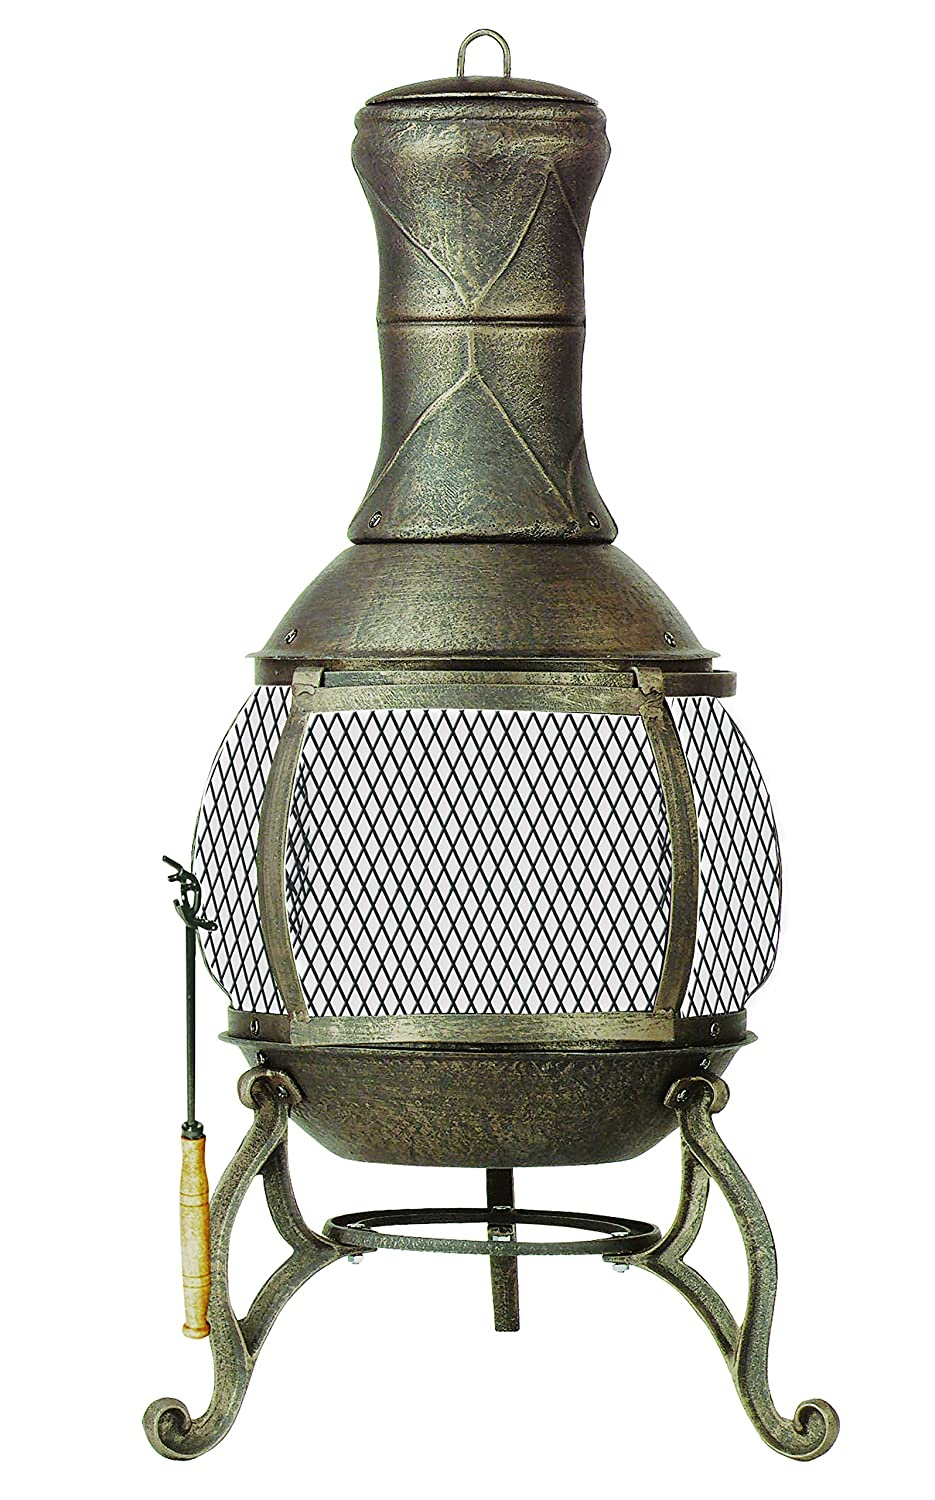 Deckmate Corona Outdoor Chimenea Fireplace Model 30075 Kay Home Products